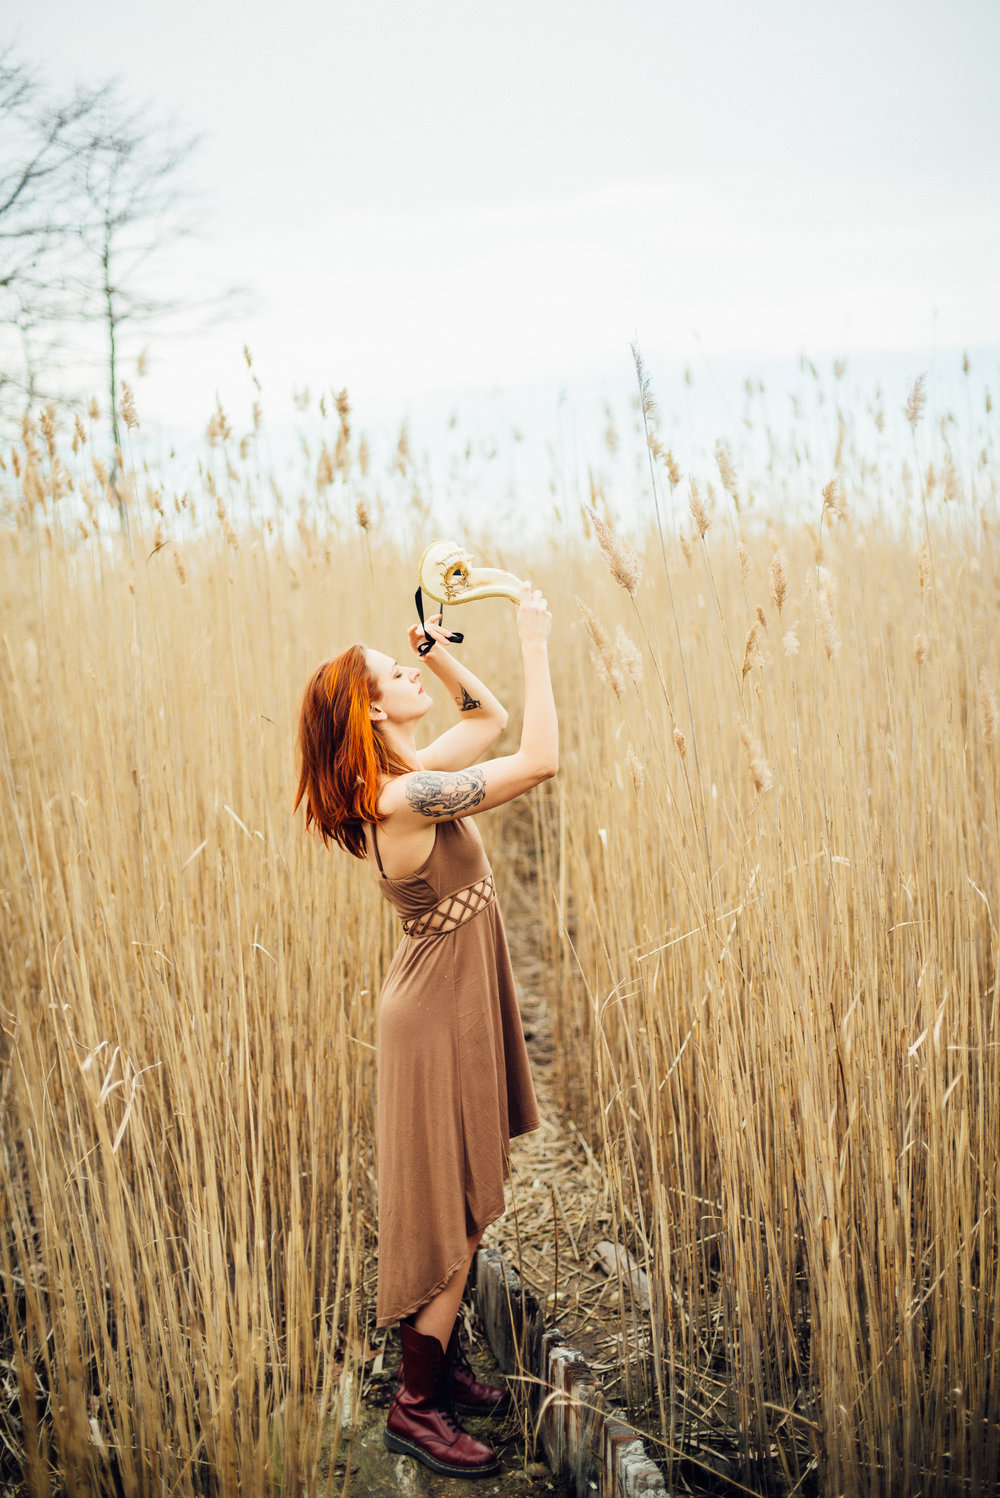 victoria_styled_shoot_wading_river_ny_winter_lake_woods_long_island_portrait_photographer-16.jpg